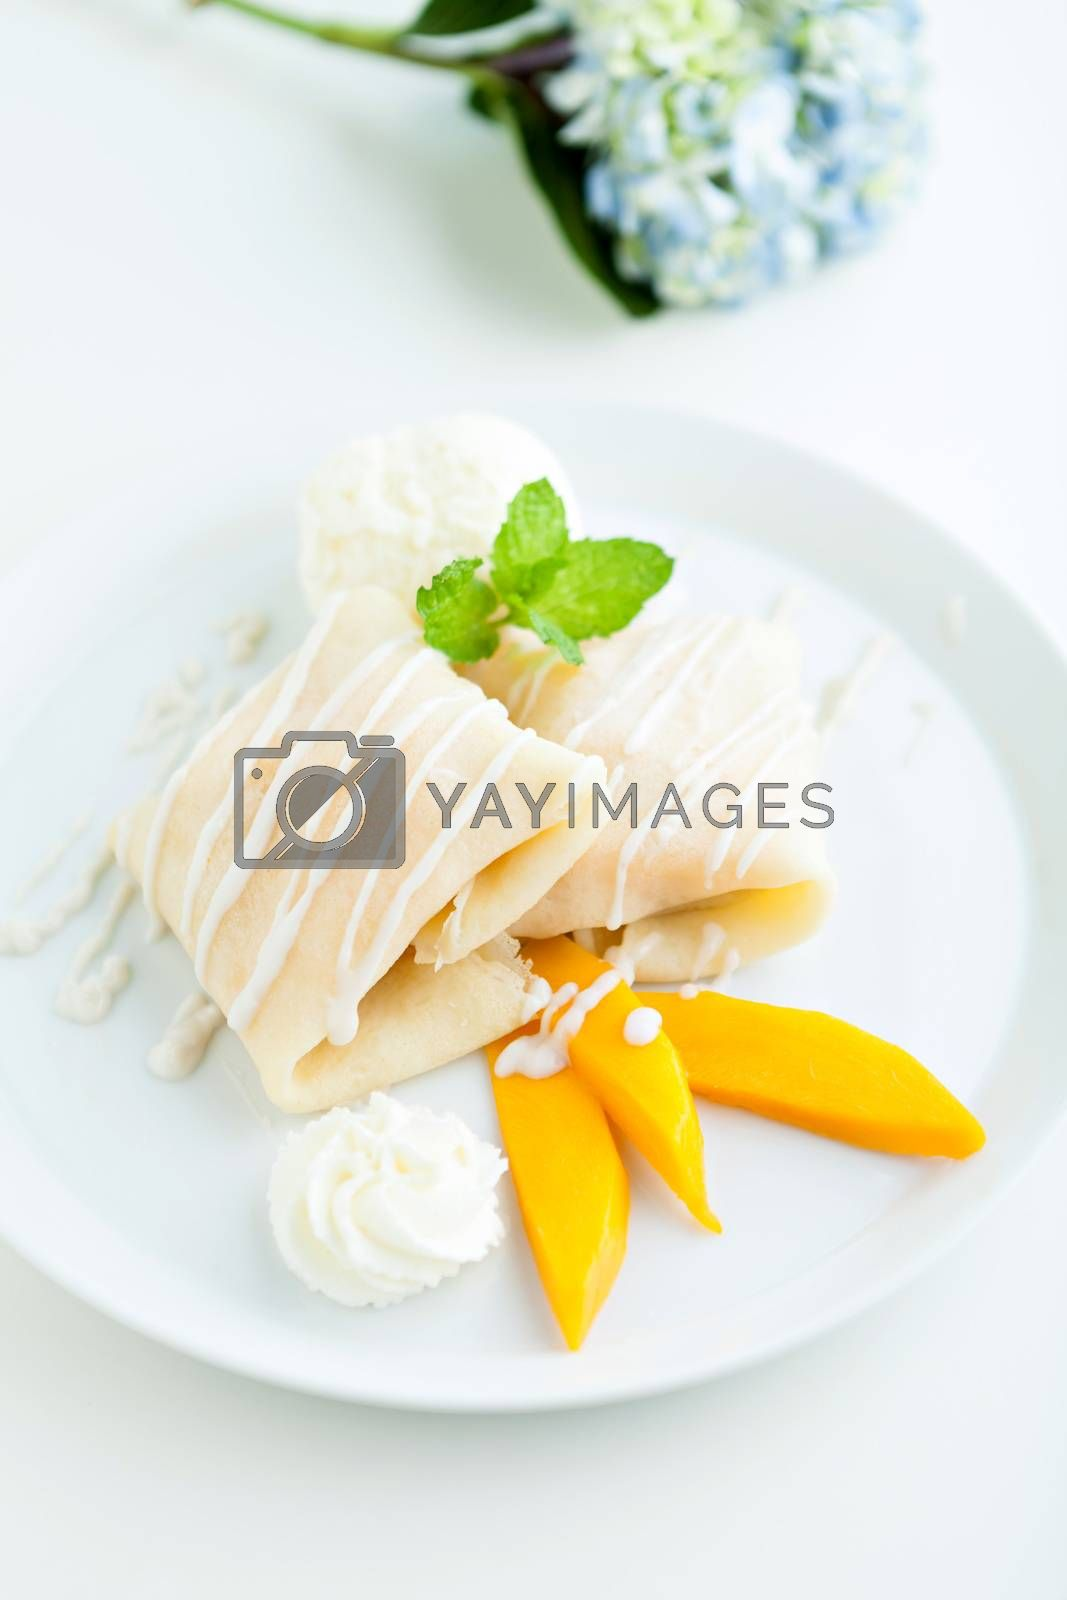 Thai style tropical dessert crepes filled with fresh mango sticky rice and a scoop of coconut ice cream. Shallow depth of field.